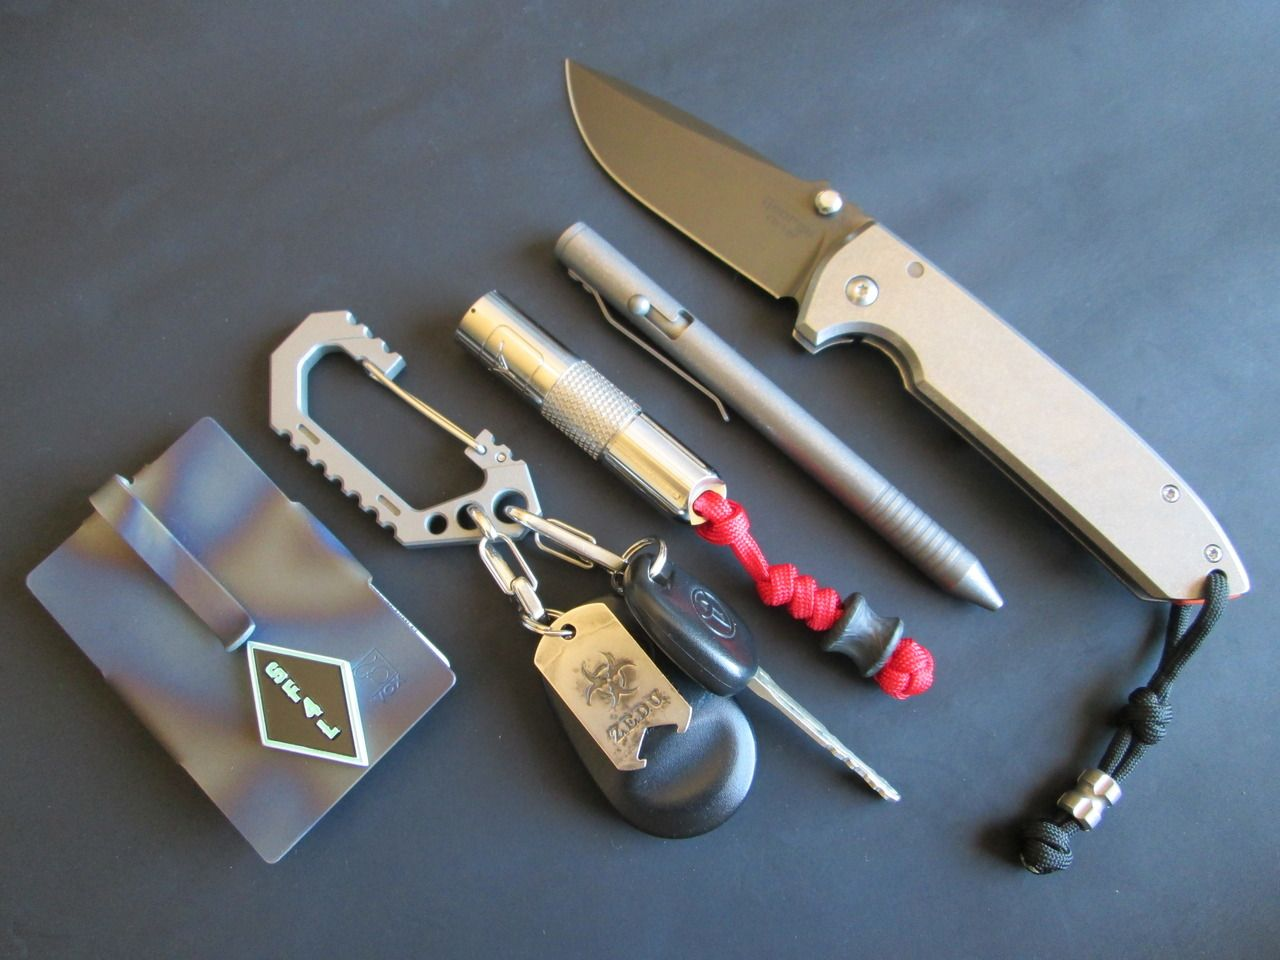 everydaycarry: Vox Knives - Ti CC/Money Holder Mike Santor